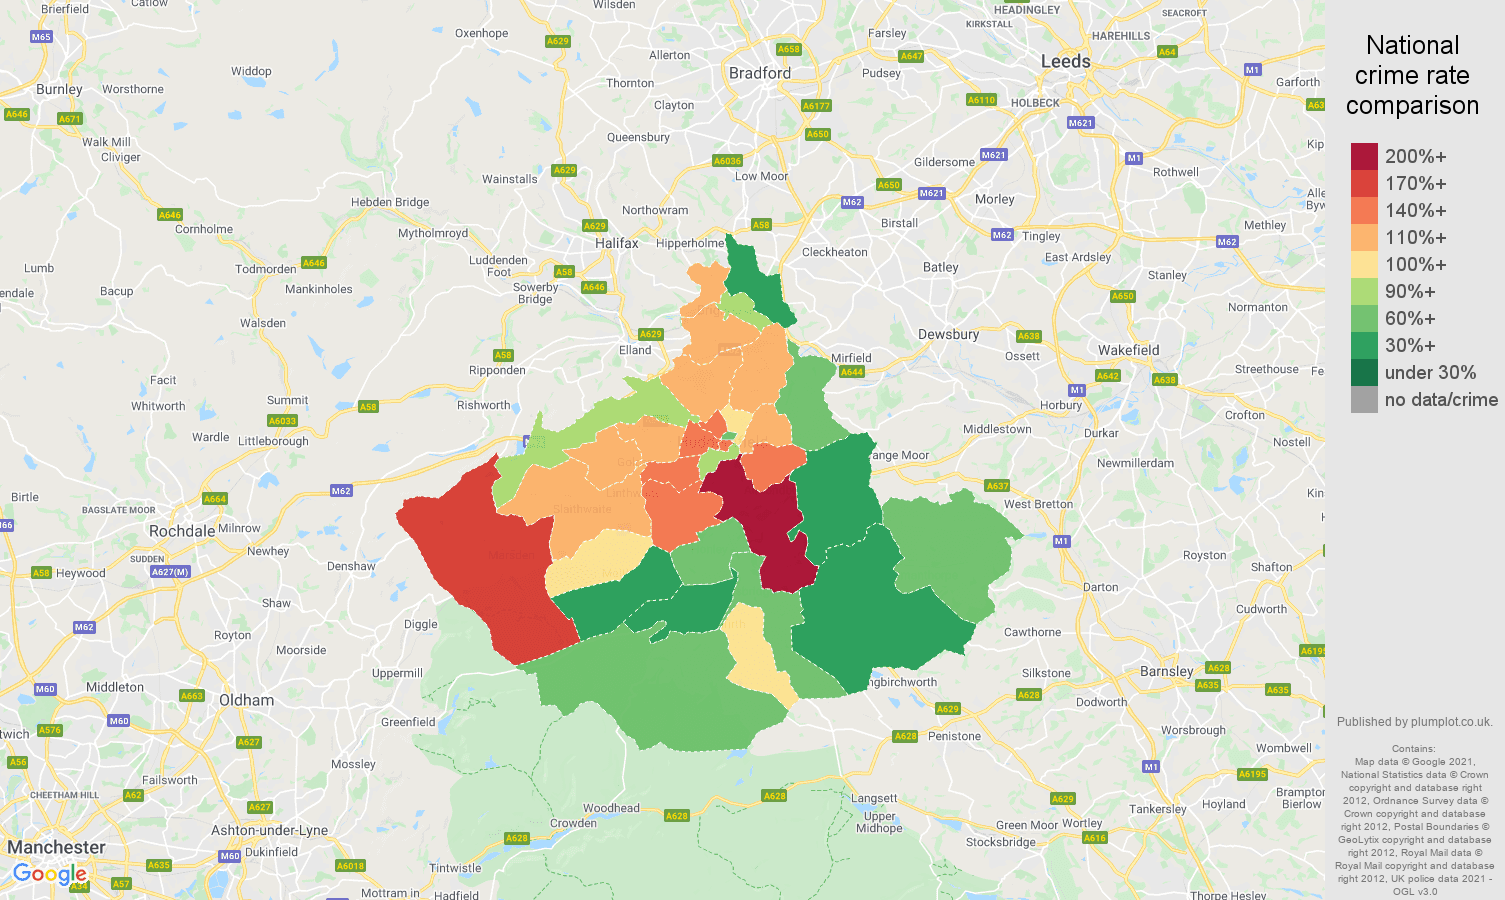 Huddersfield criminal damage and arson crime statistics in maps and